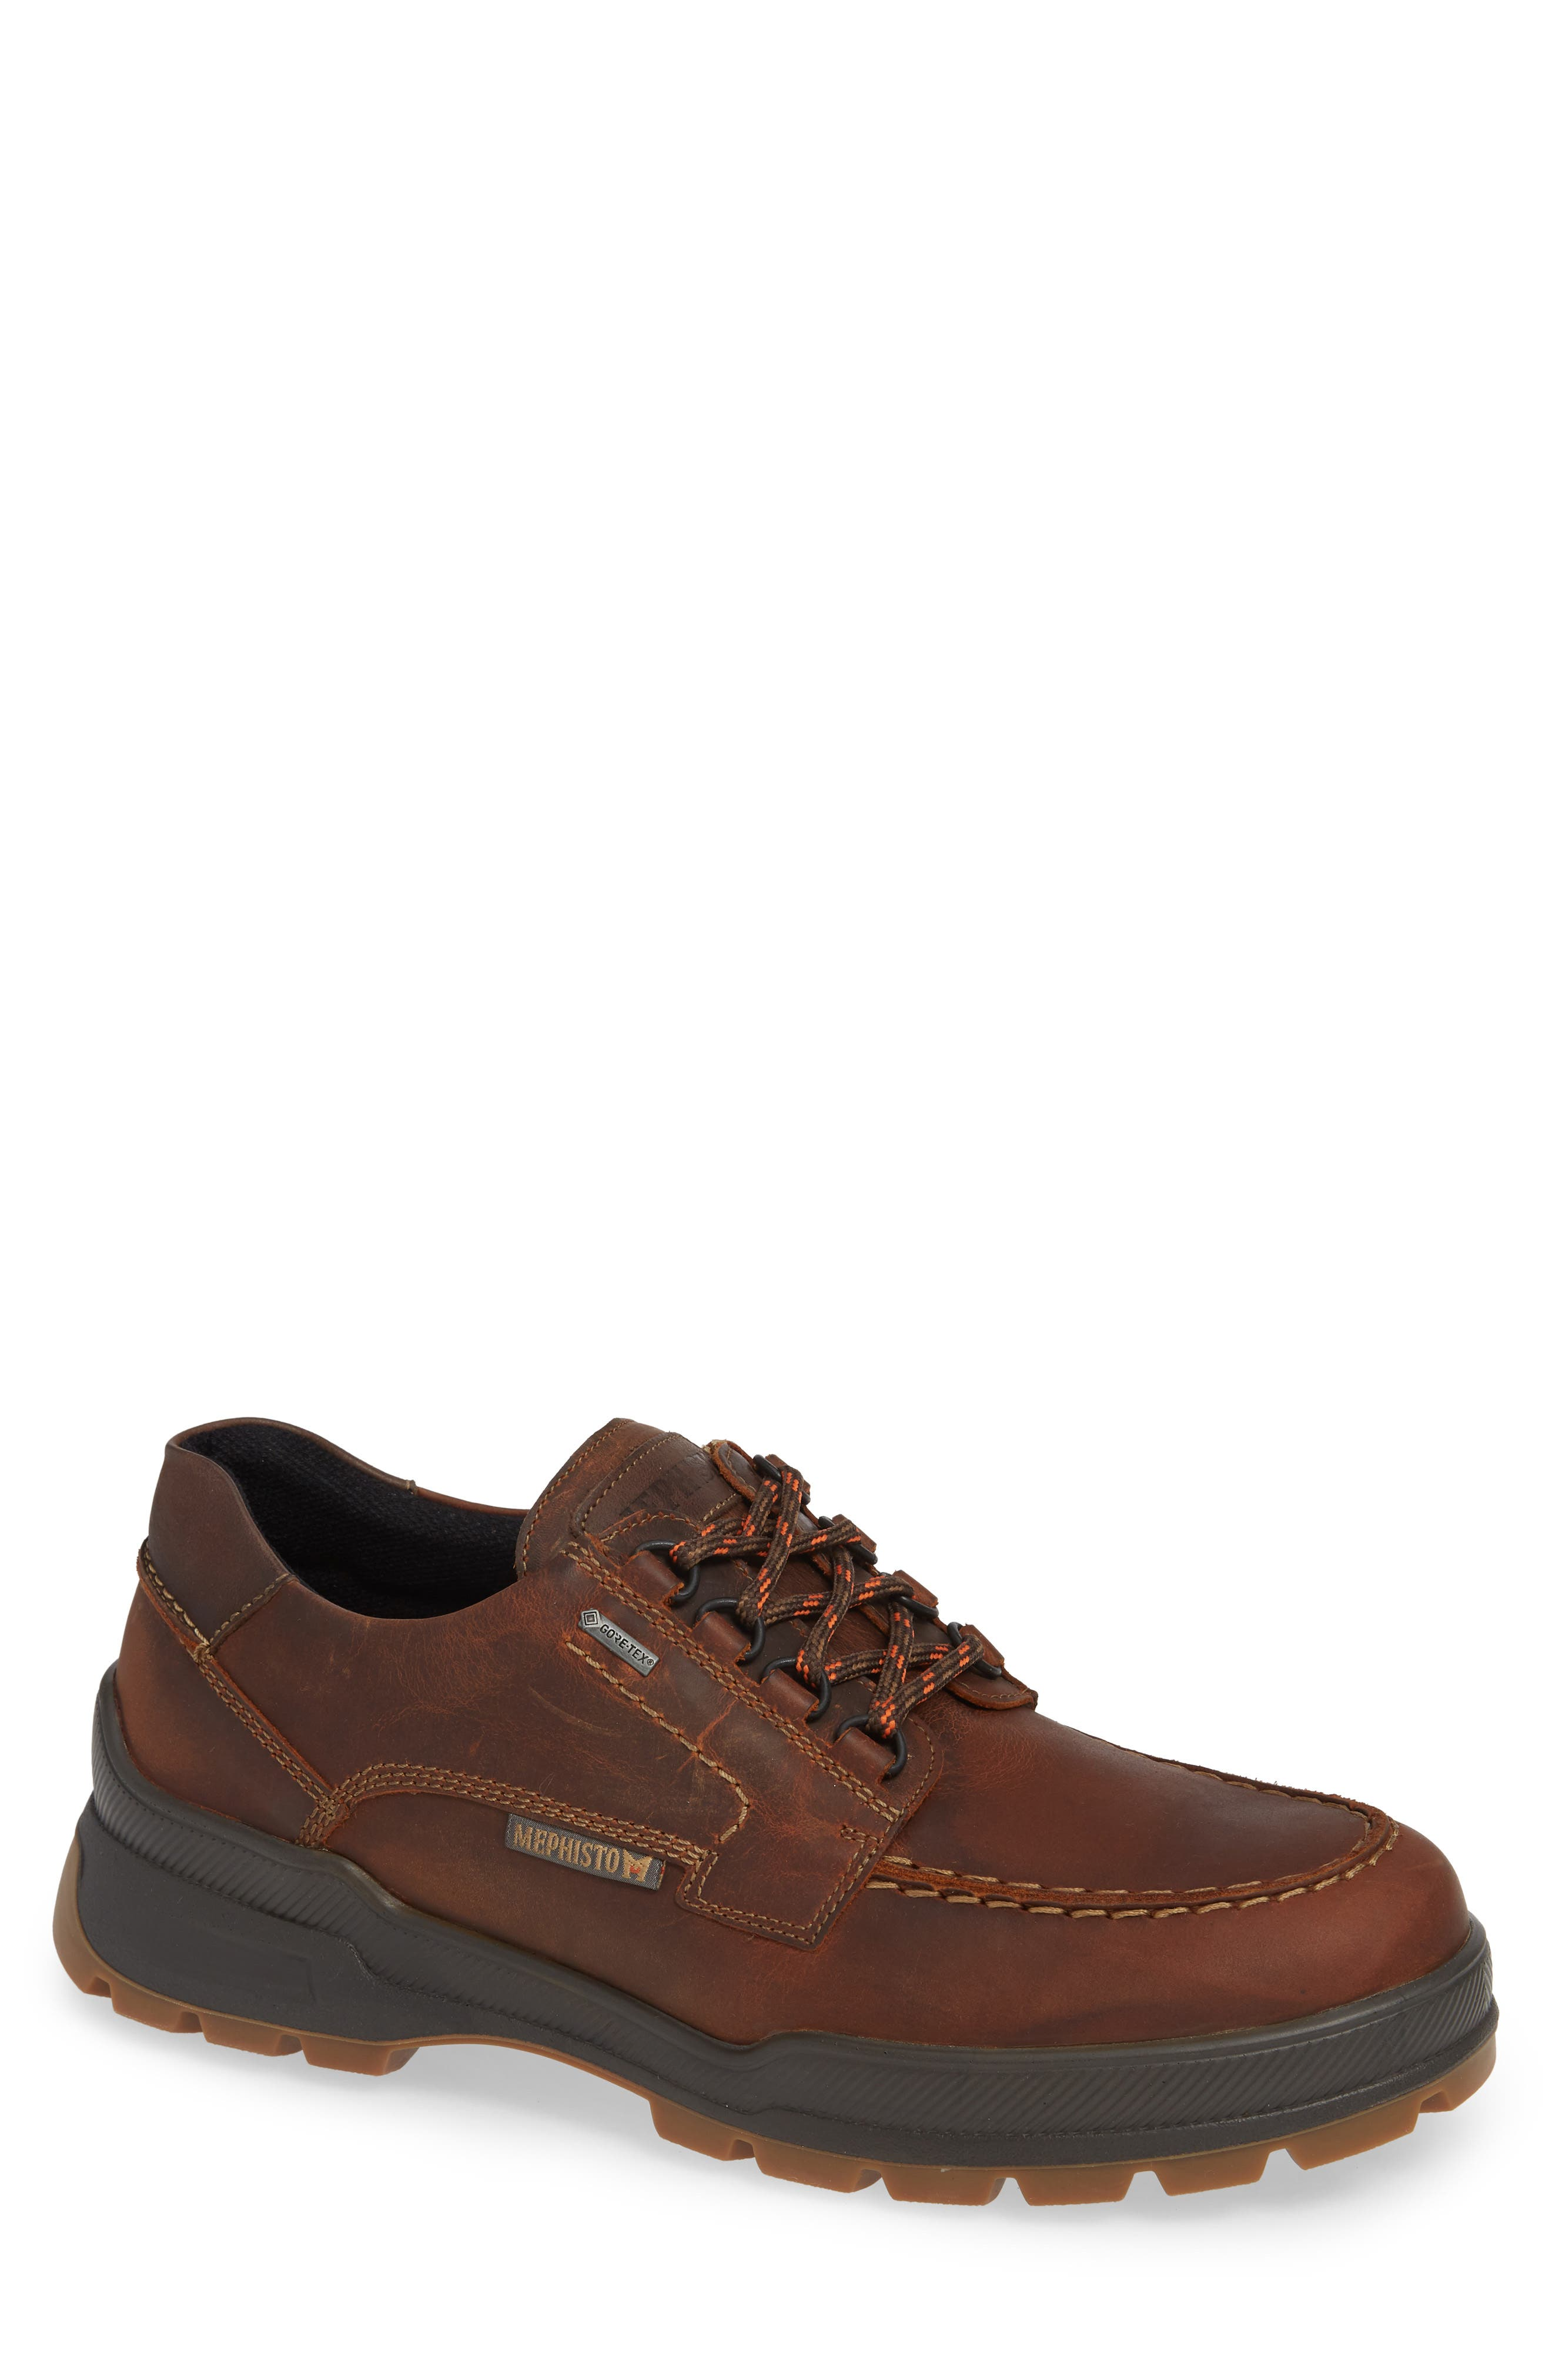 Isak GT Moc Toe Derby,                             Main thumbnail 1, color,                             TOBACCO LEATHER